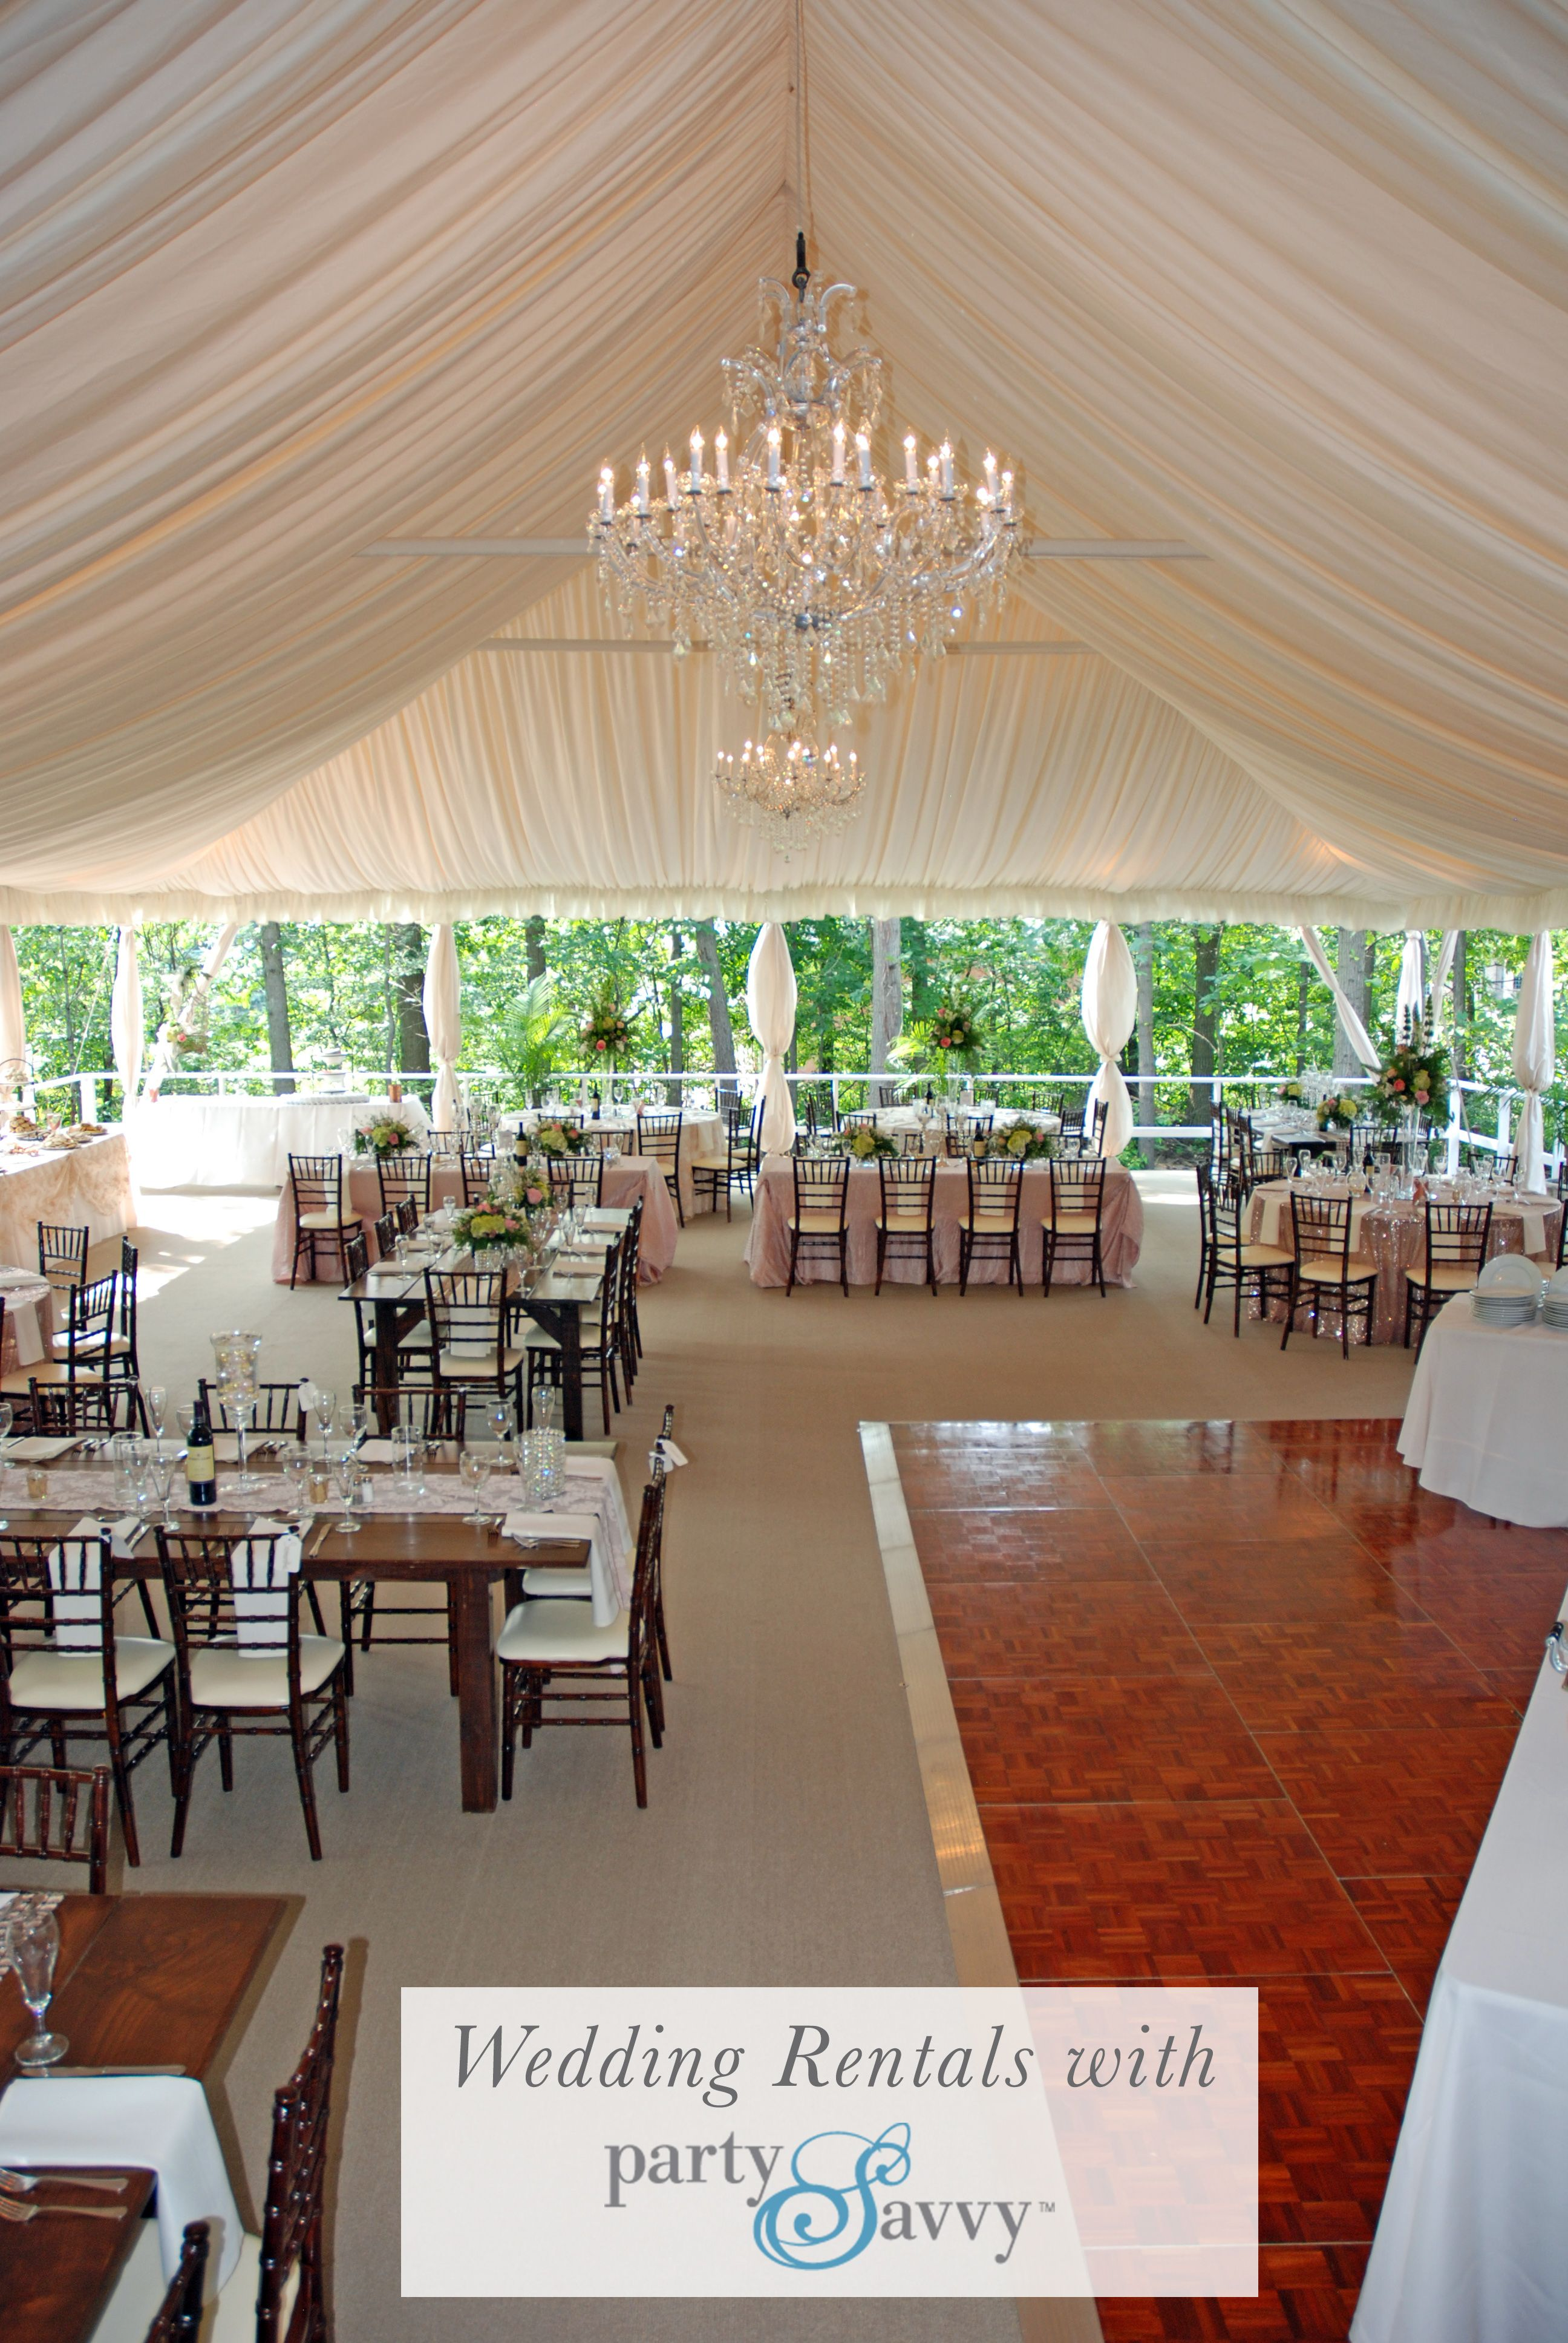 Request A Quote For Your Wedding Today At Partysavvy We Re More Than An Event Rental Company With A Passion F Wedding Rentals Wedding Outdoor Winter Wedding